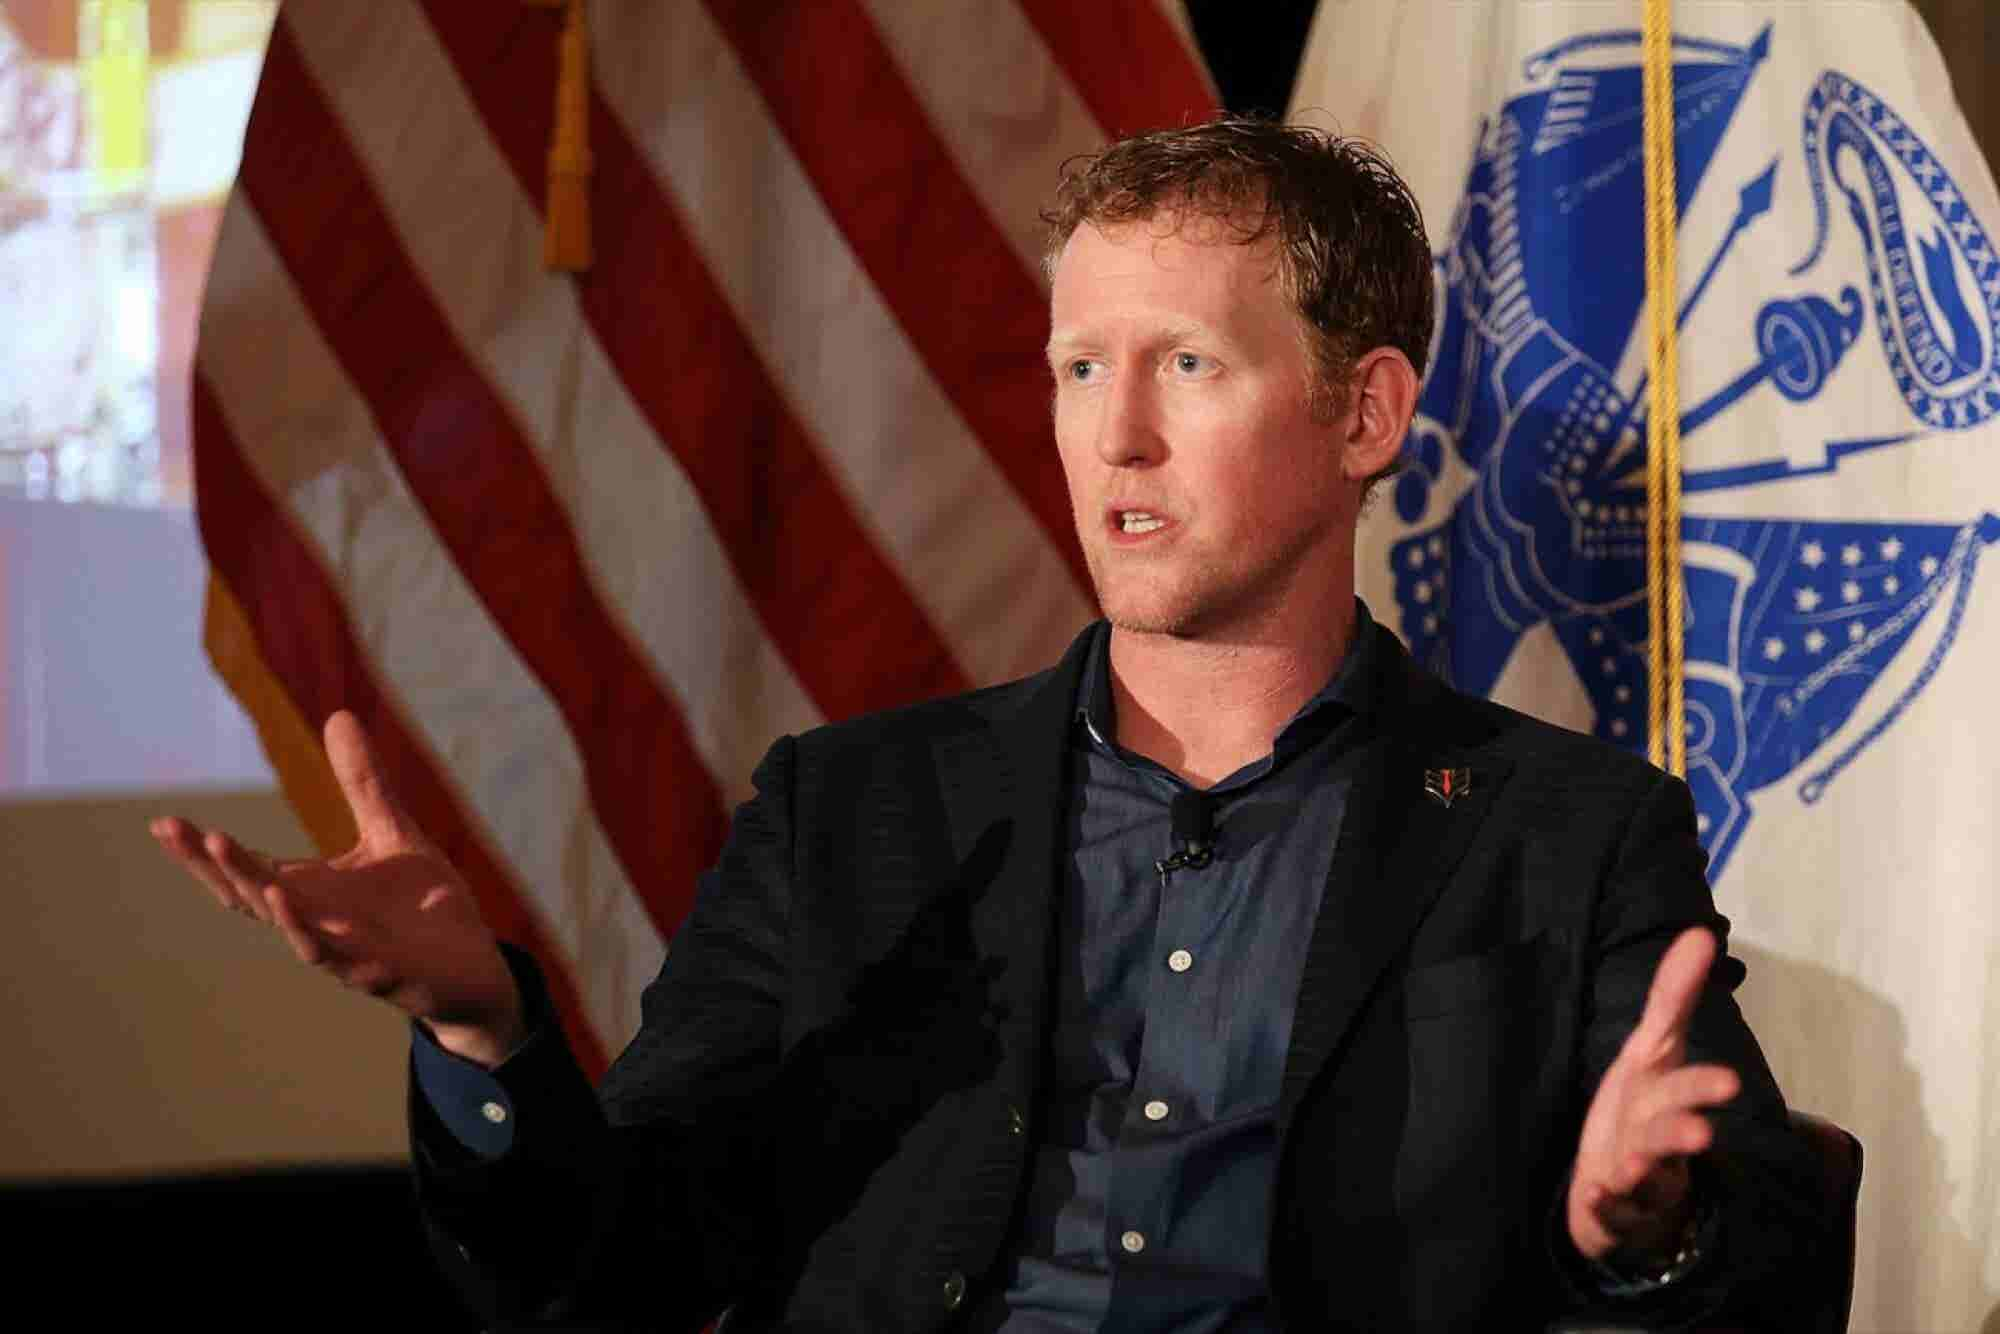 What Is Leadership? The Navy SEAL Who Killed Osama Bin Laden Answers.